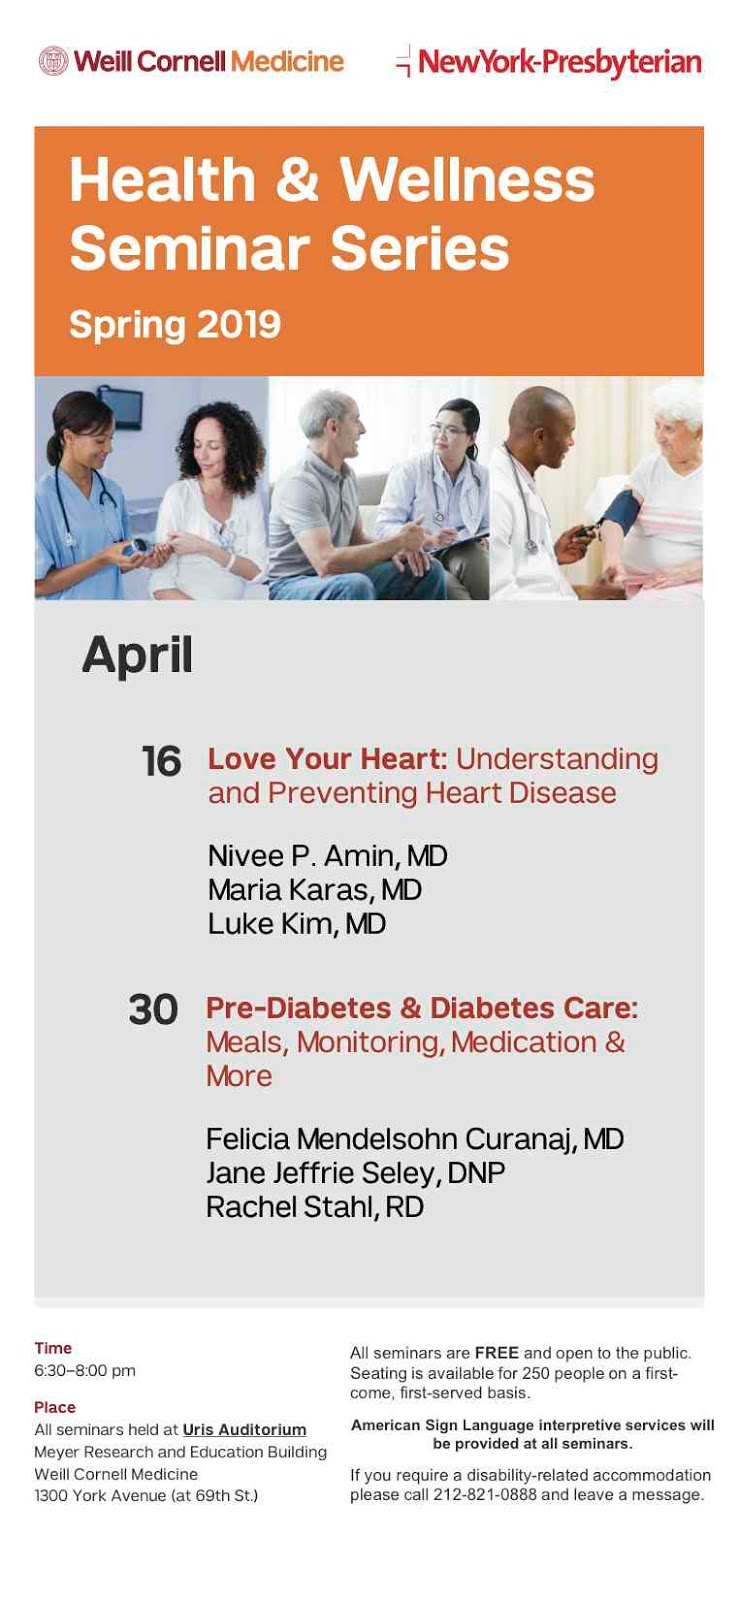 You're Invited To Weill Cornell Medicine/NY Presbyterian Spring 2019 Health & Wellness Seminars